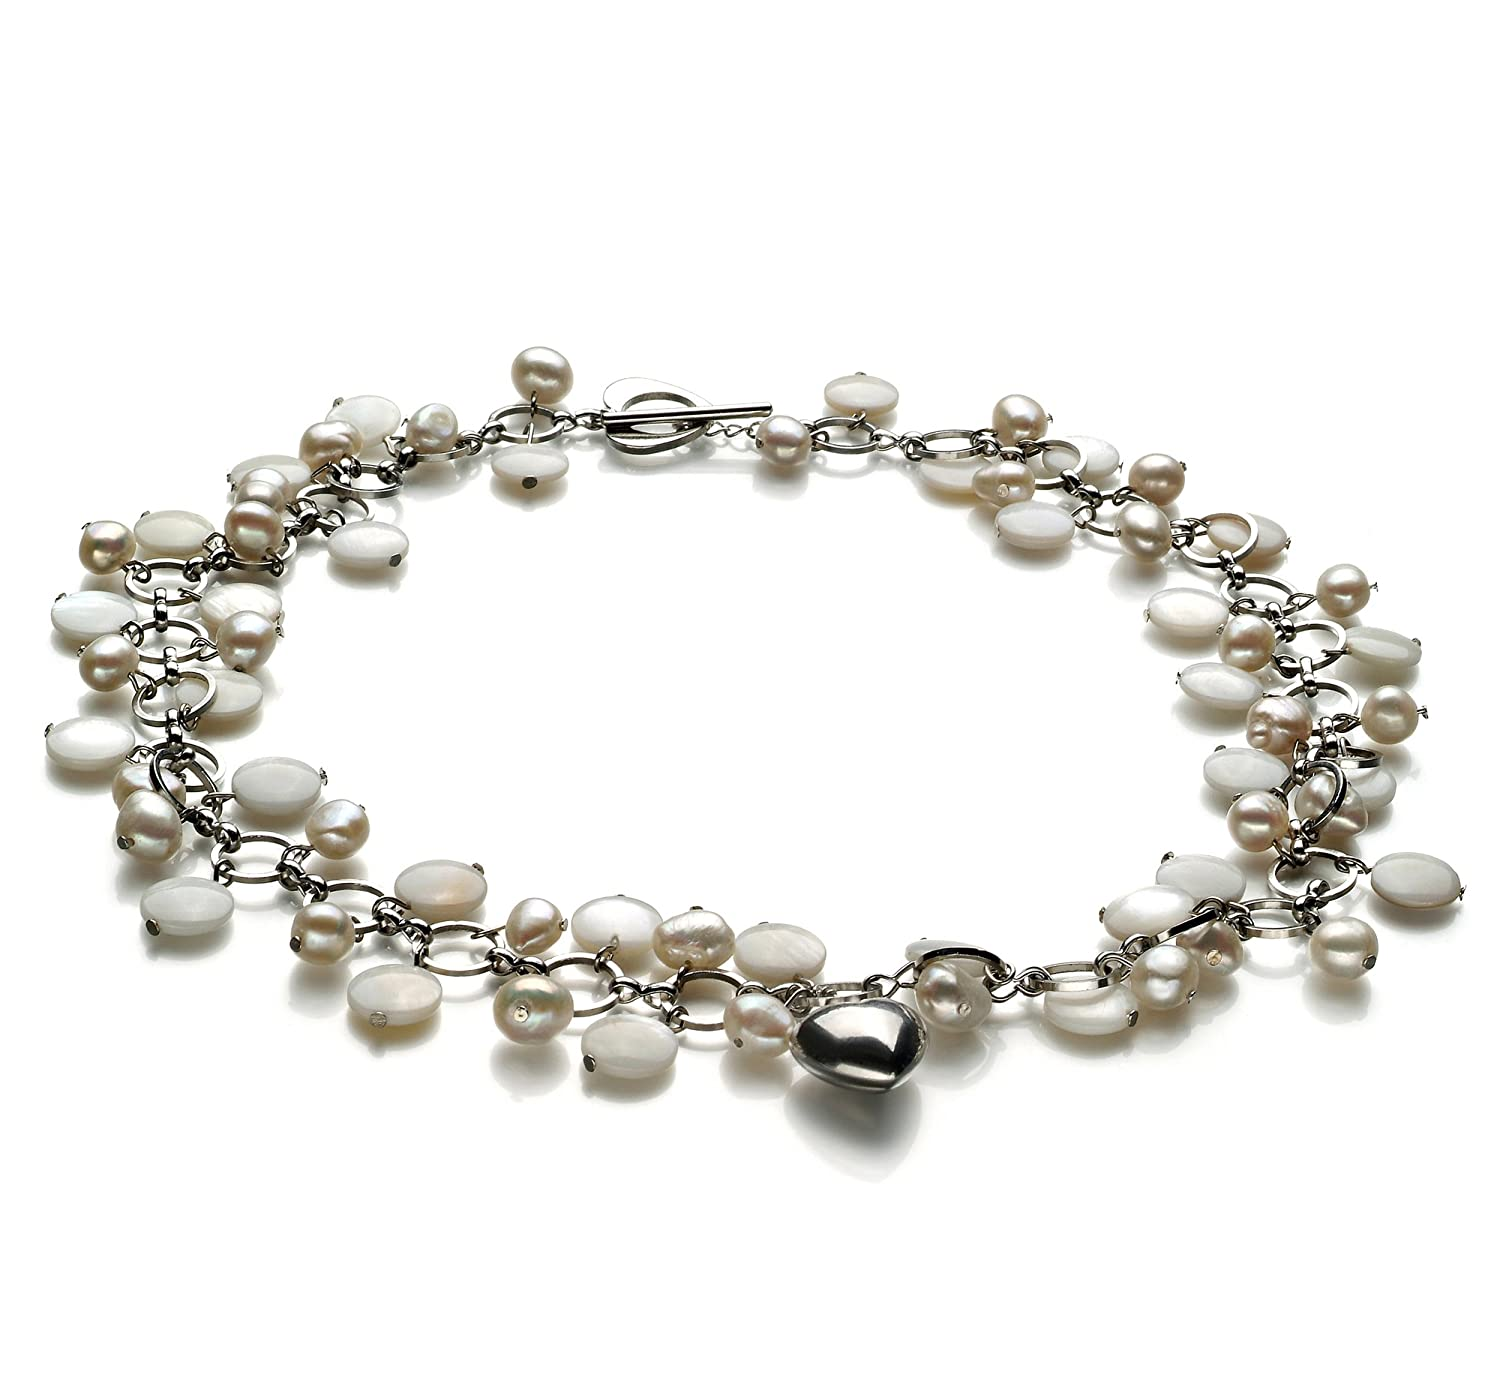 White 6-7mm A Quality Freshwater Cultured Pearl Necklace